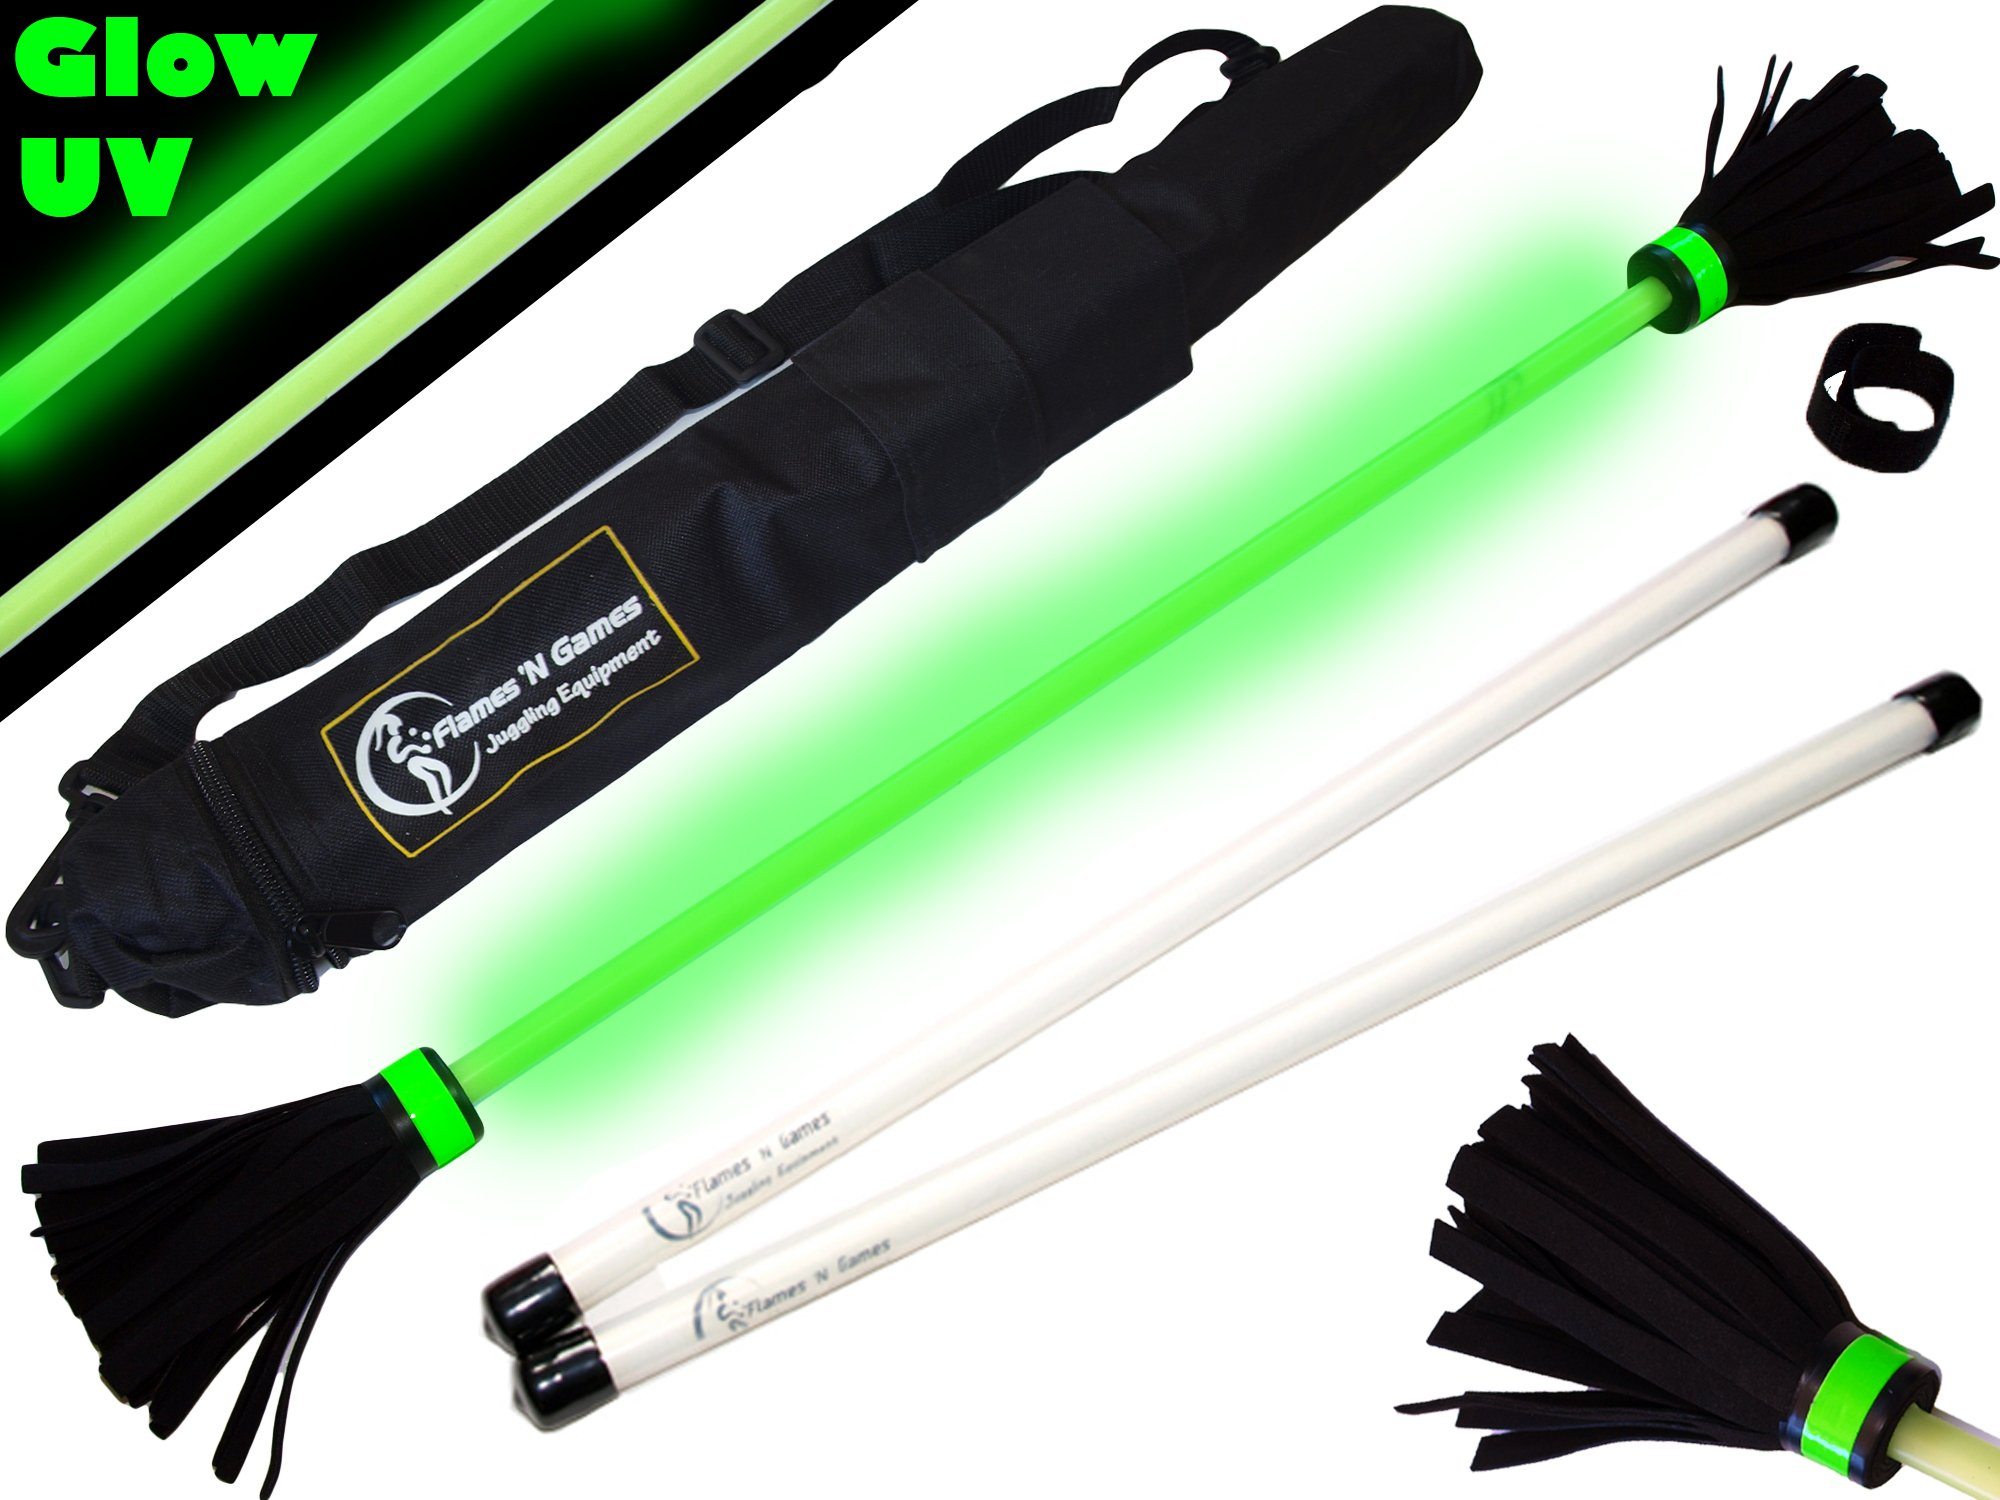 Flames N Games MOONSHINE (Glow In The Dark) Flowerstick Set + FIBREGLASS Handsticks + Travel Bag! Ideal Flower stick Set for Beginners & Pro's! by Flames N Games Devil Sticks/Flower Sticks